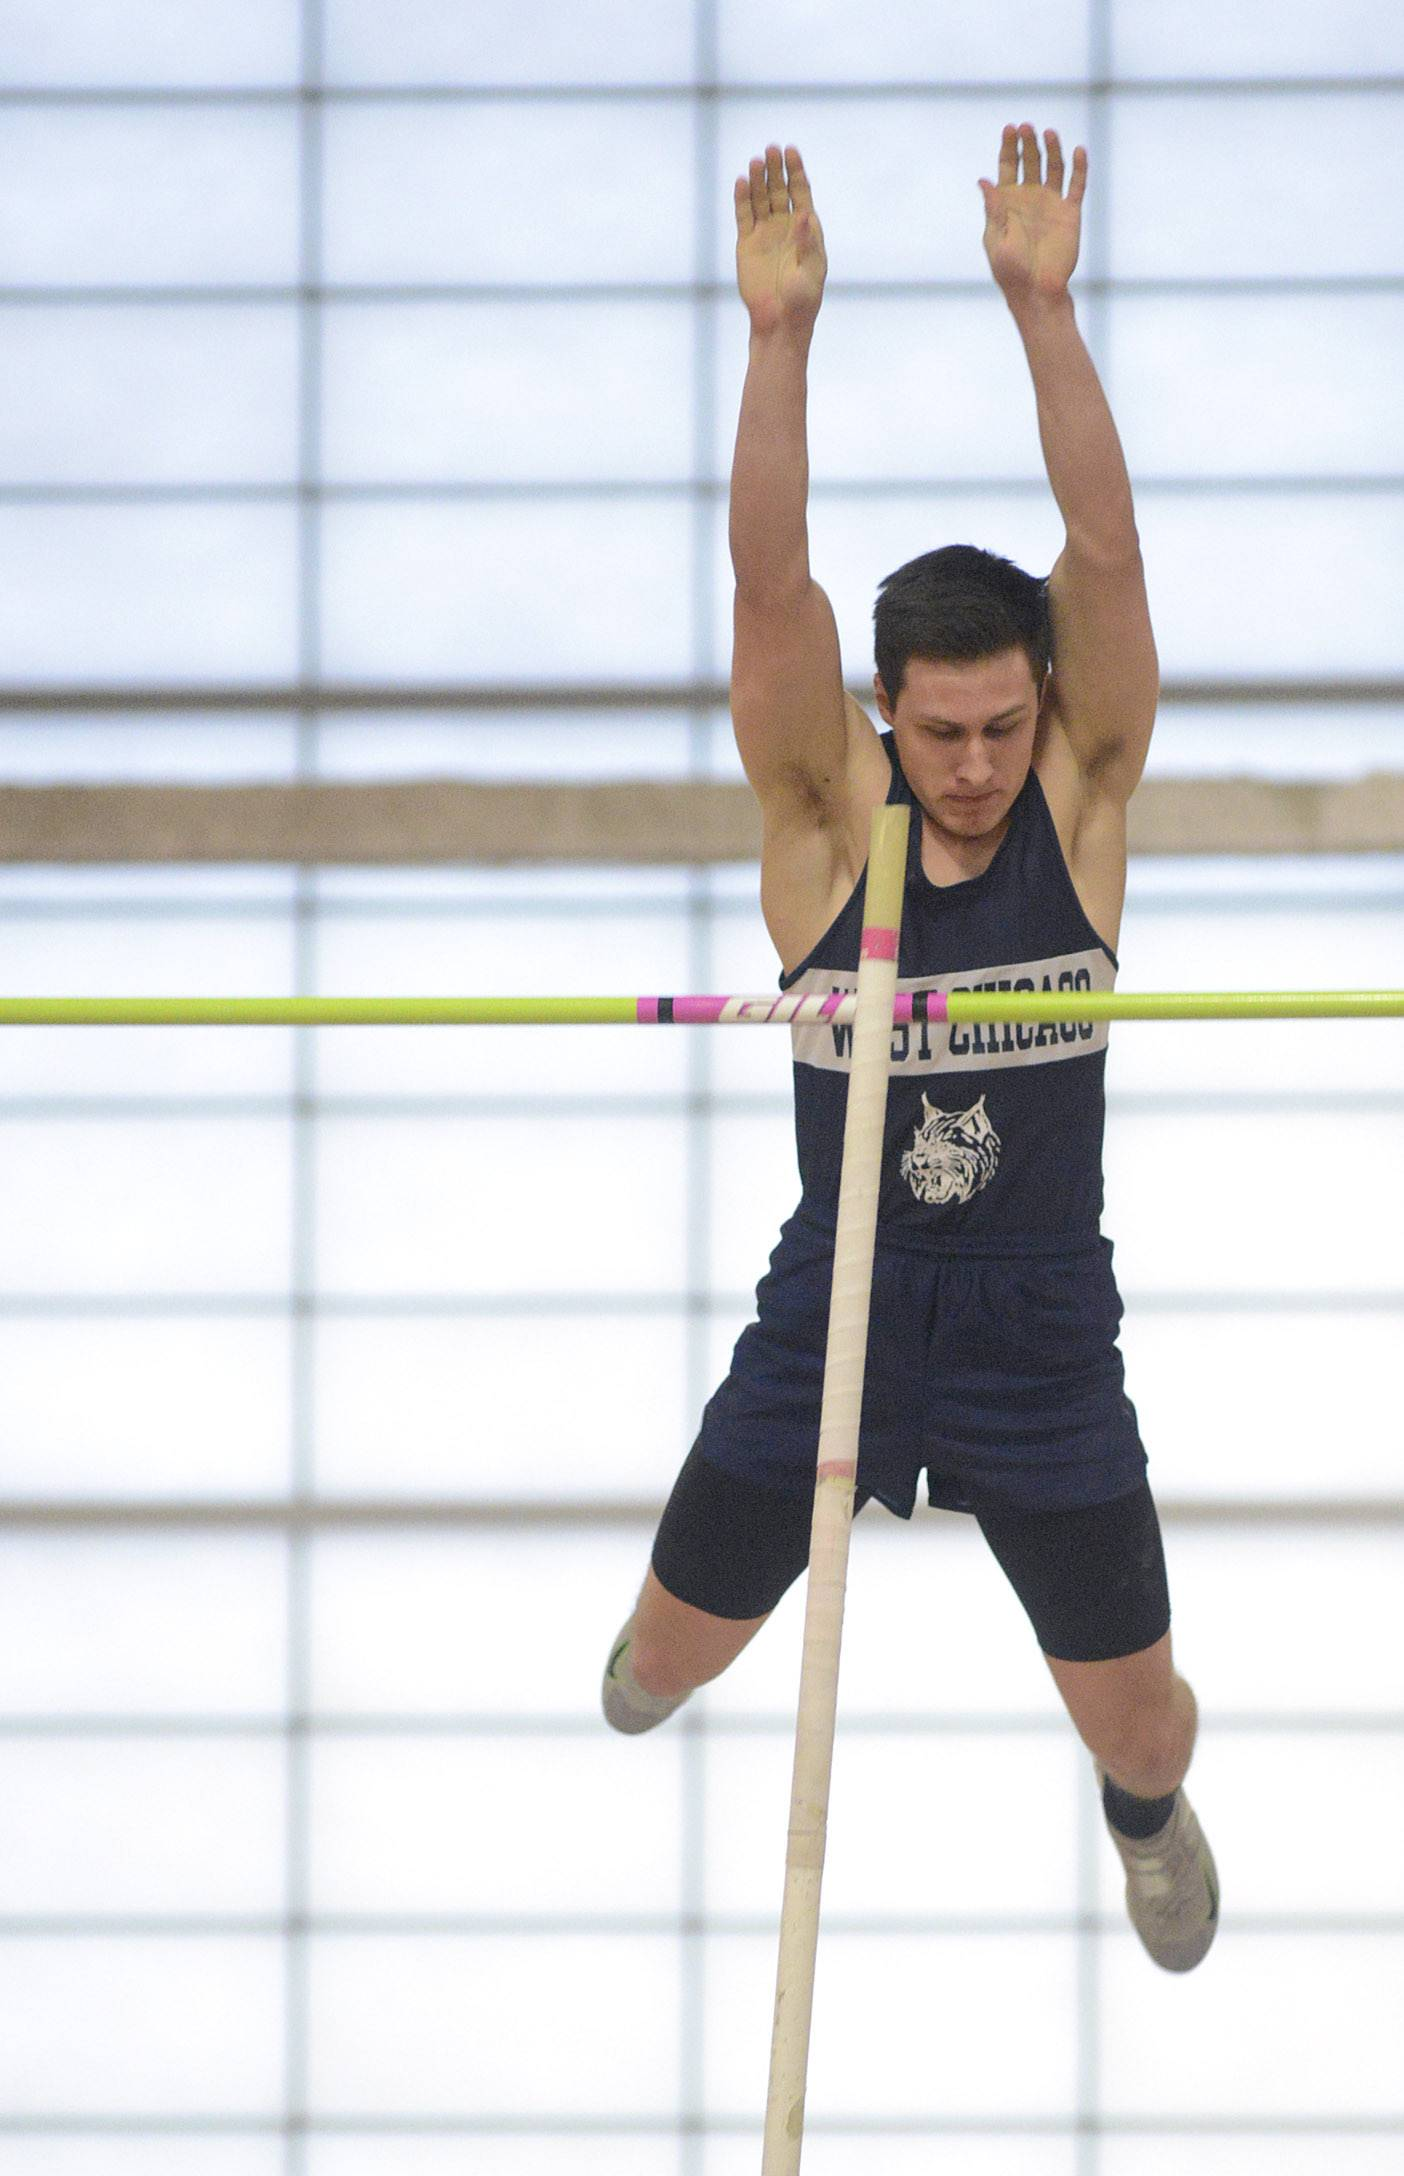 West Chicago's James Kubik in the pole vault at the Upstate Eight Conference in Batavia on Friday.